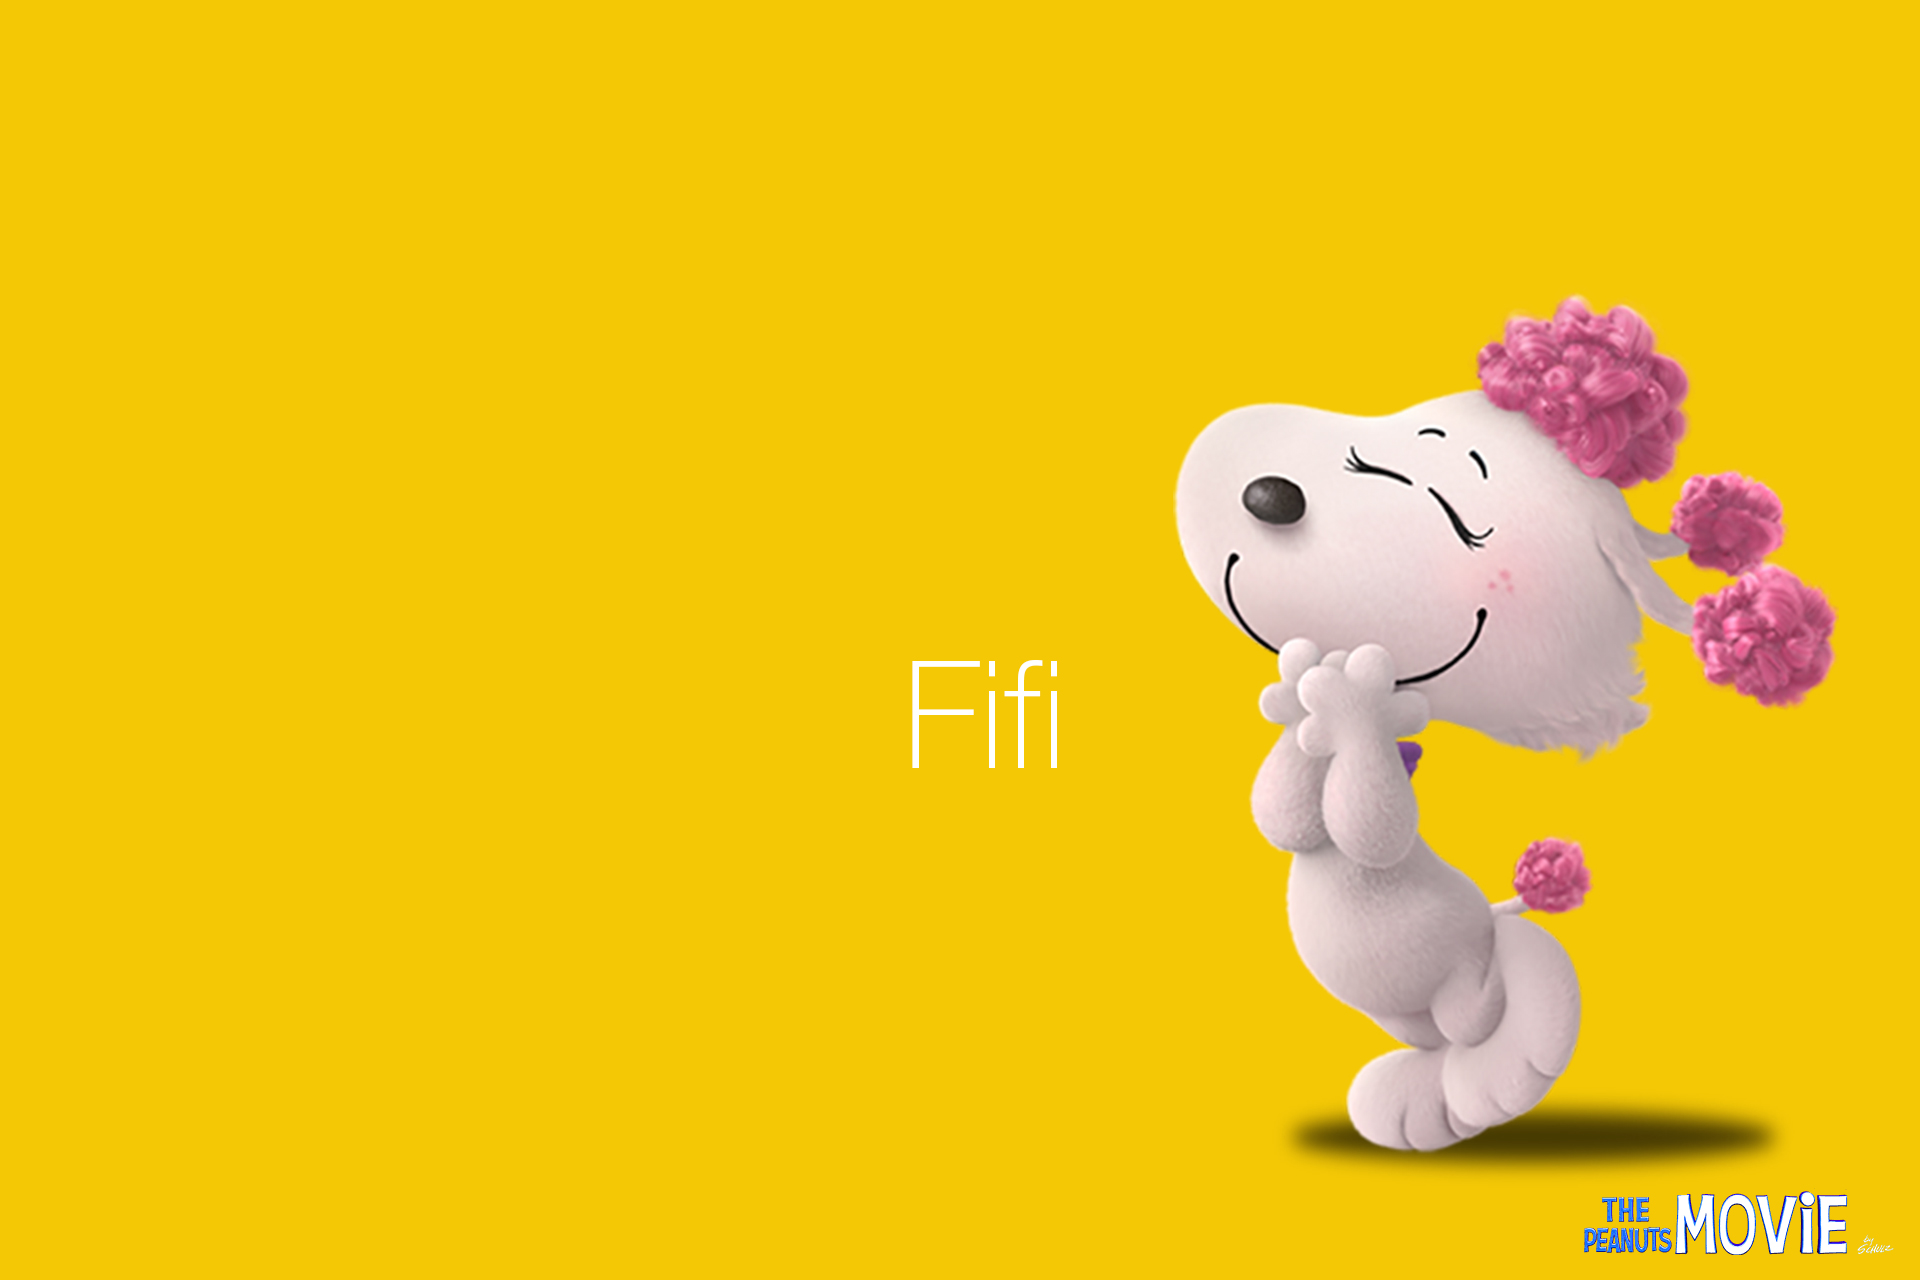 Hd Supreme Wallpaper The Peanuts Movie Hd Wallpaper Fifi Volganga